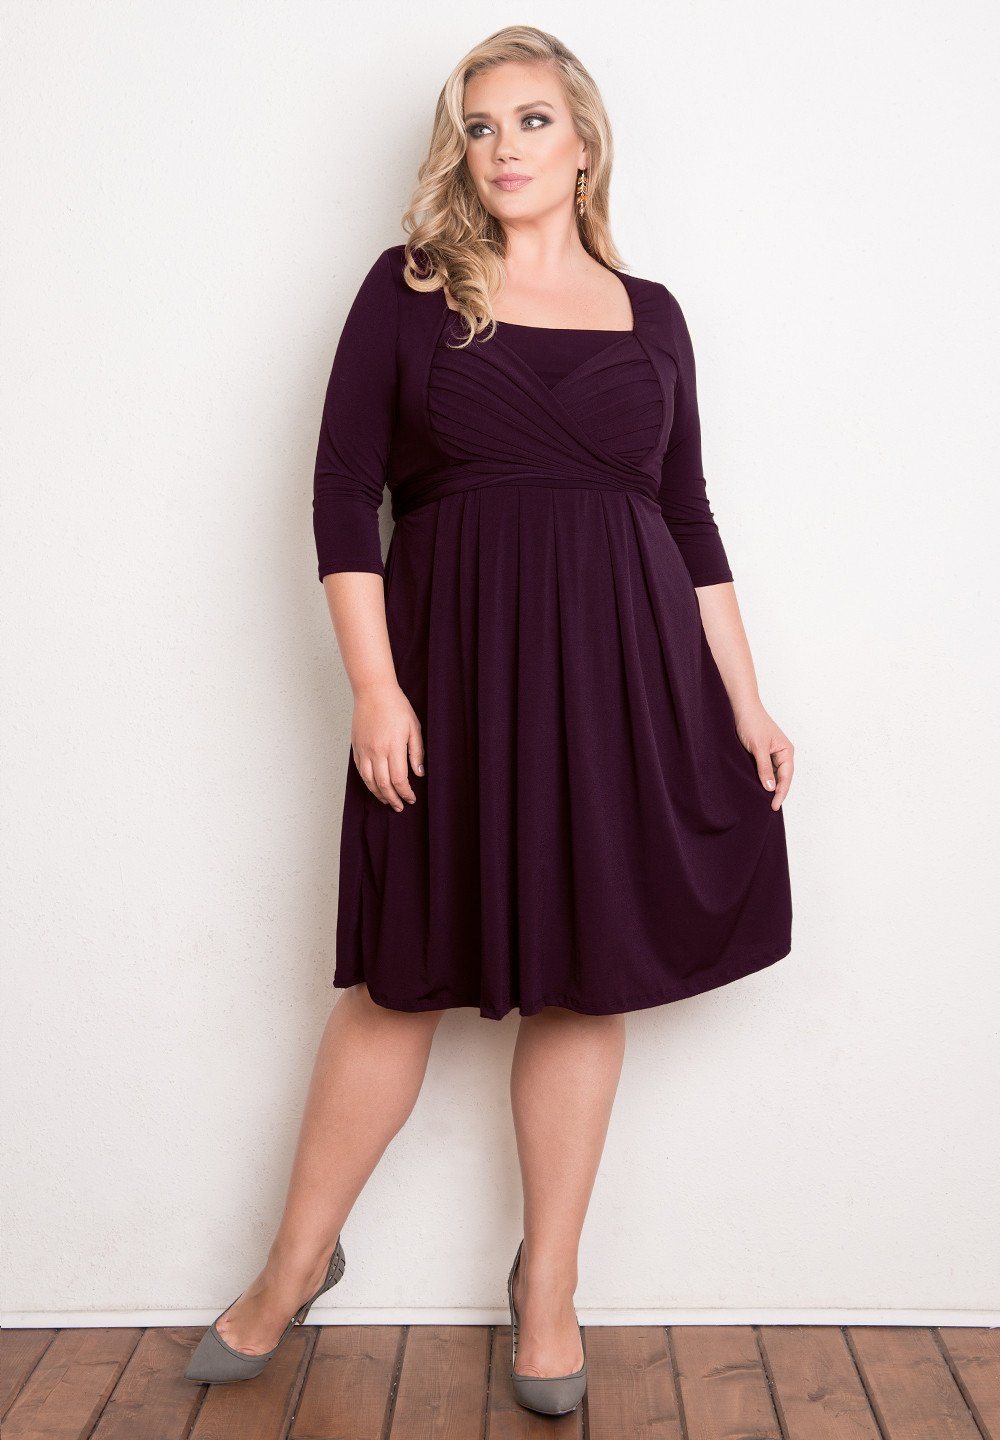 Belk Plus Size Special Occasion Dresses - Photo Dress Wallpaper HD AOrg